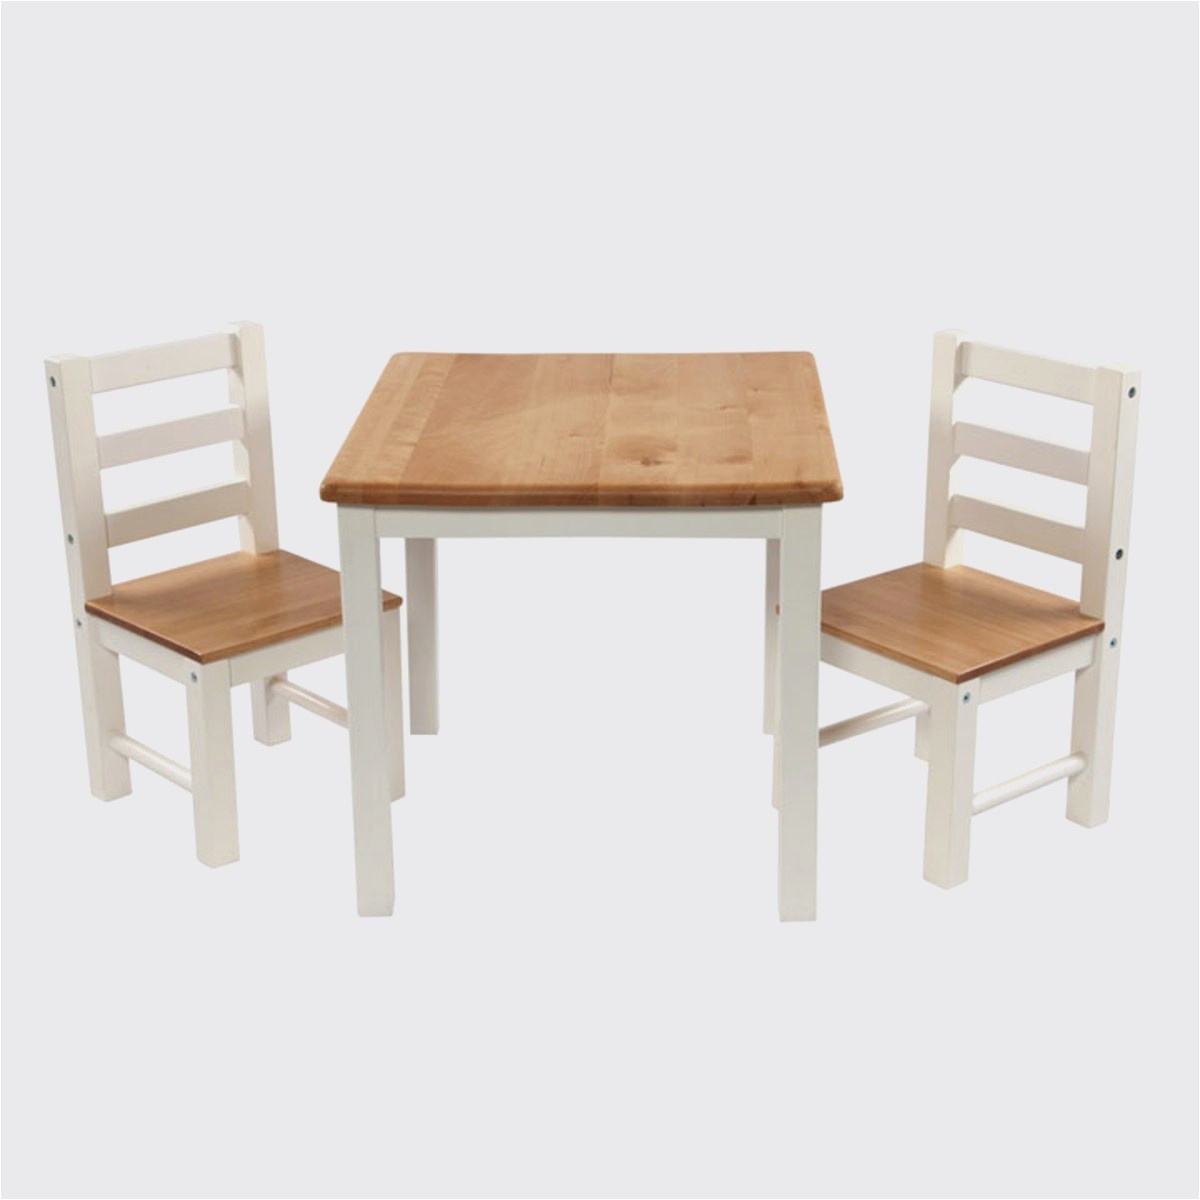 Playroom table and chair set  sc 1 st  Foter & Childrens Table And Chair Sets Wooden - Foter